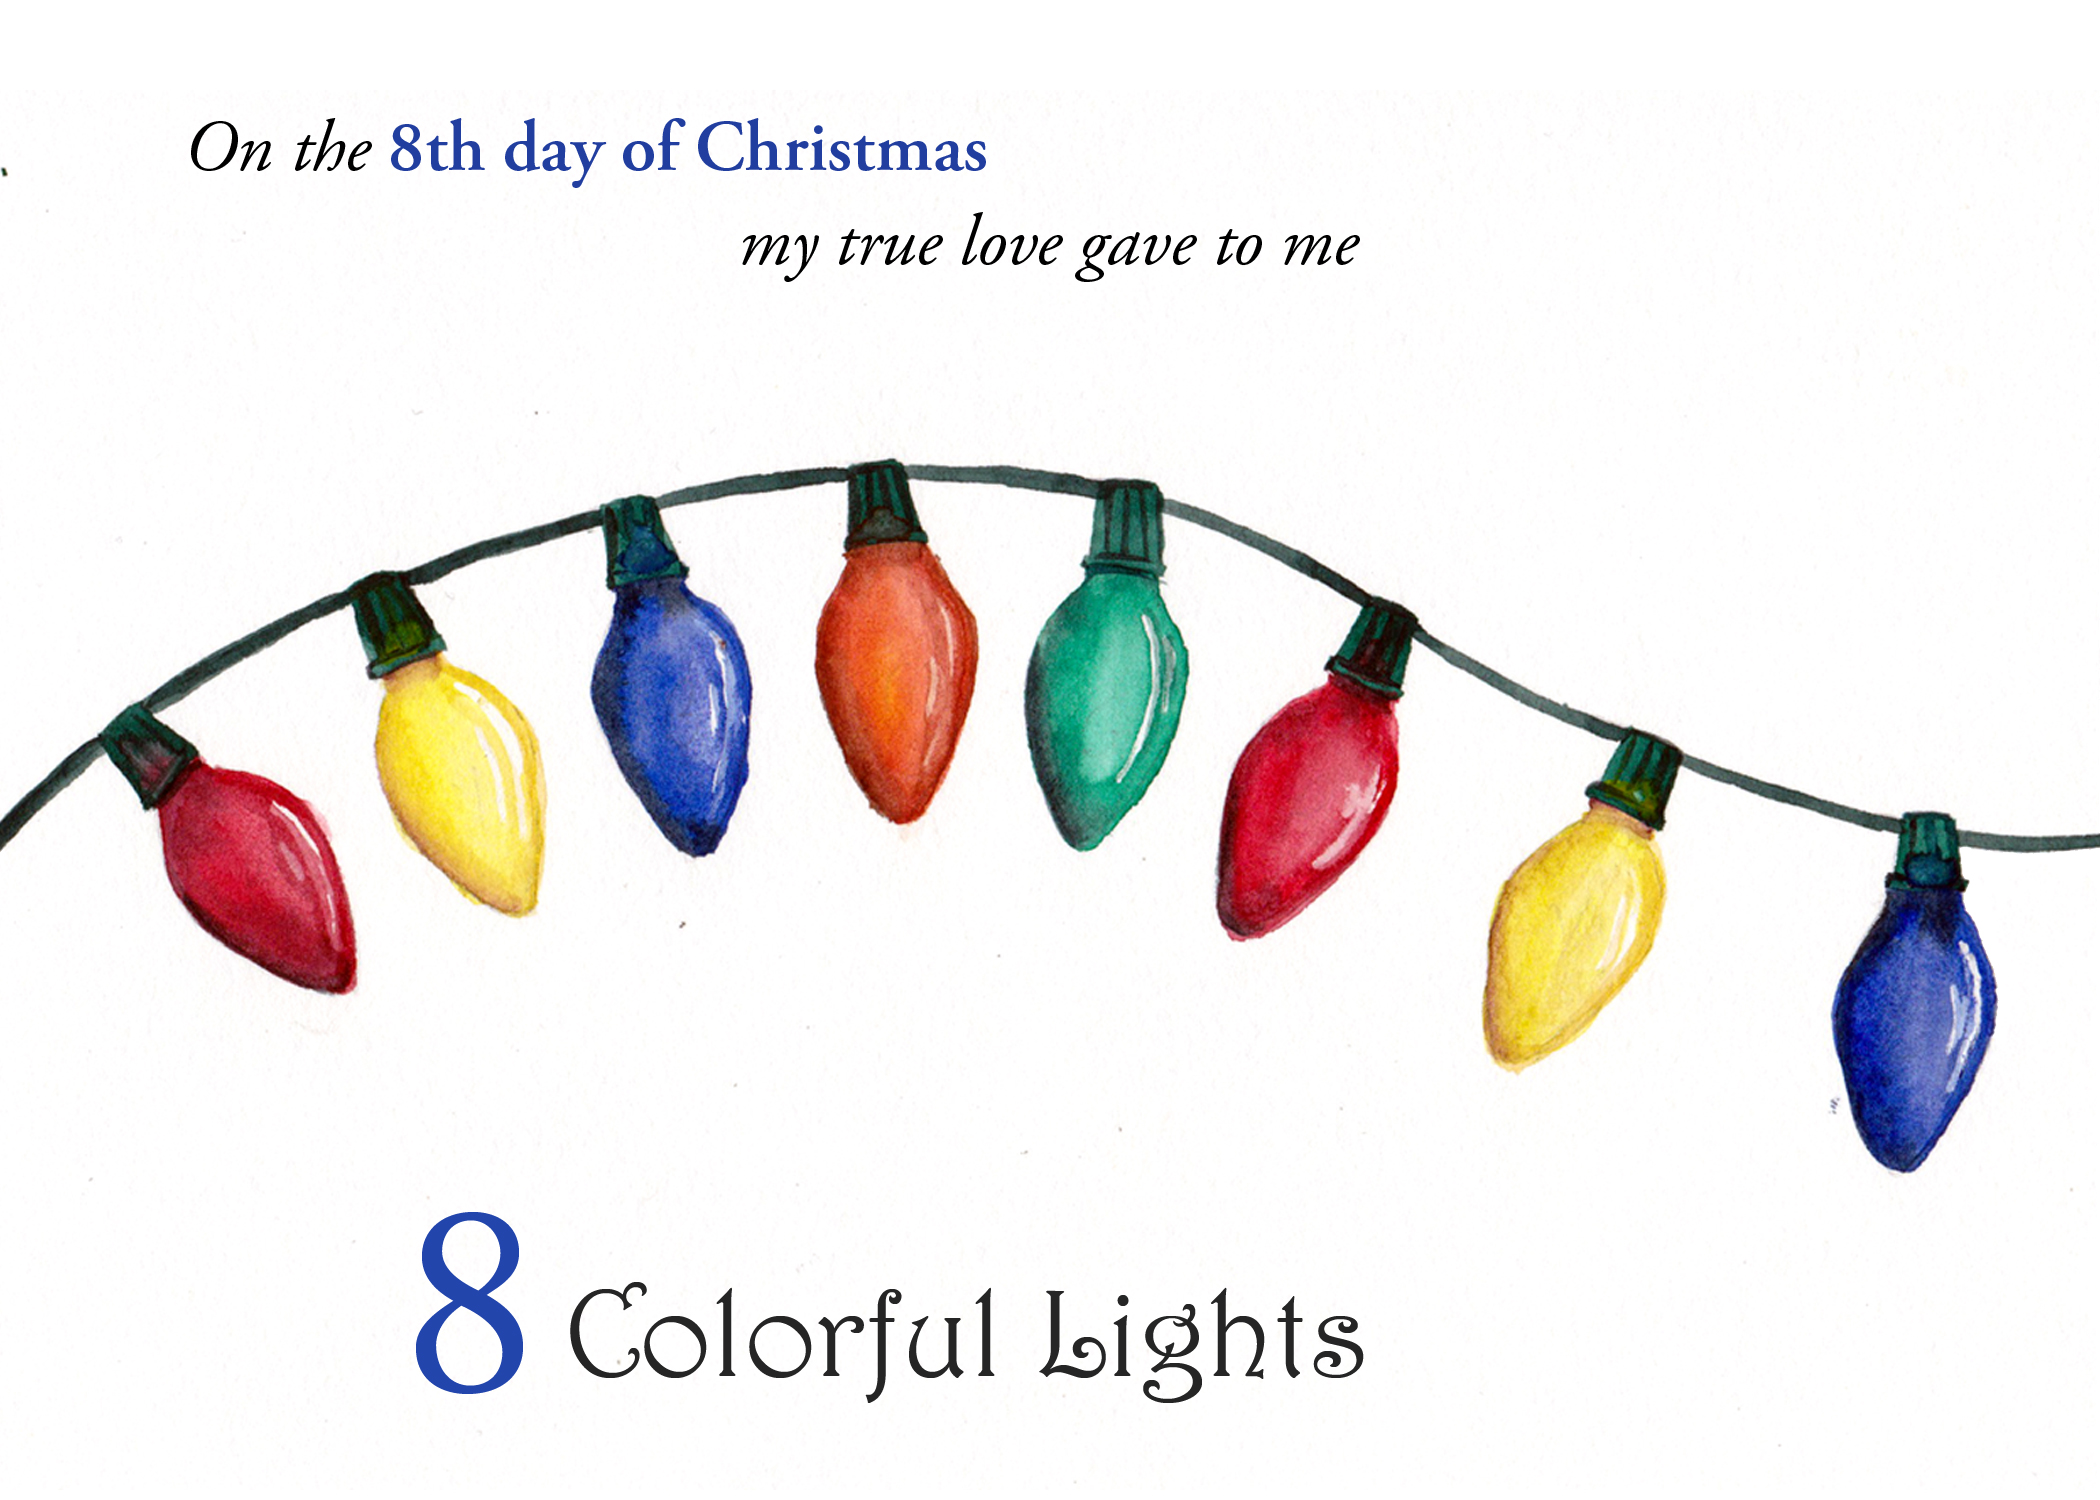 The 8th folded card in a set of the 12 Days of Christmas, 8 Colorful Lights